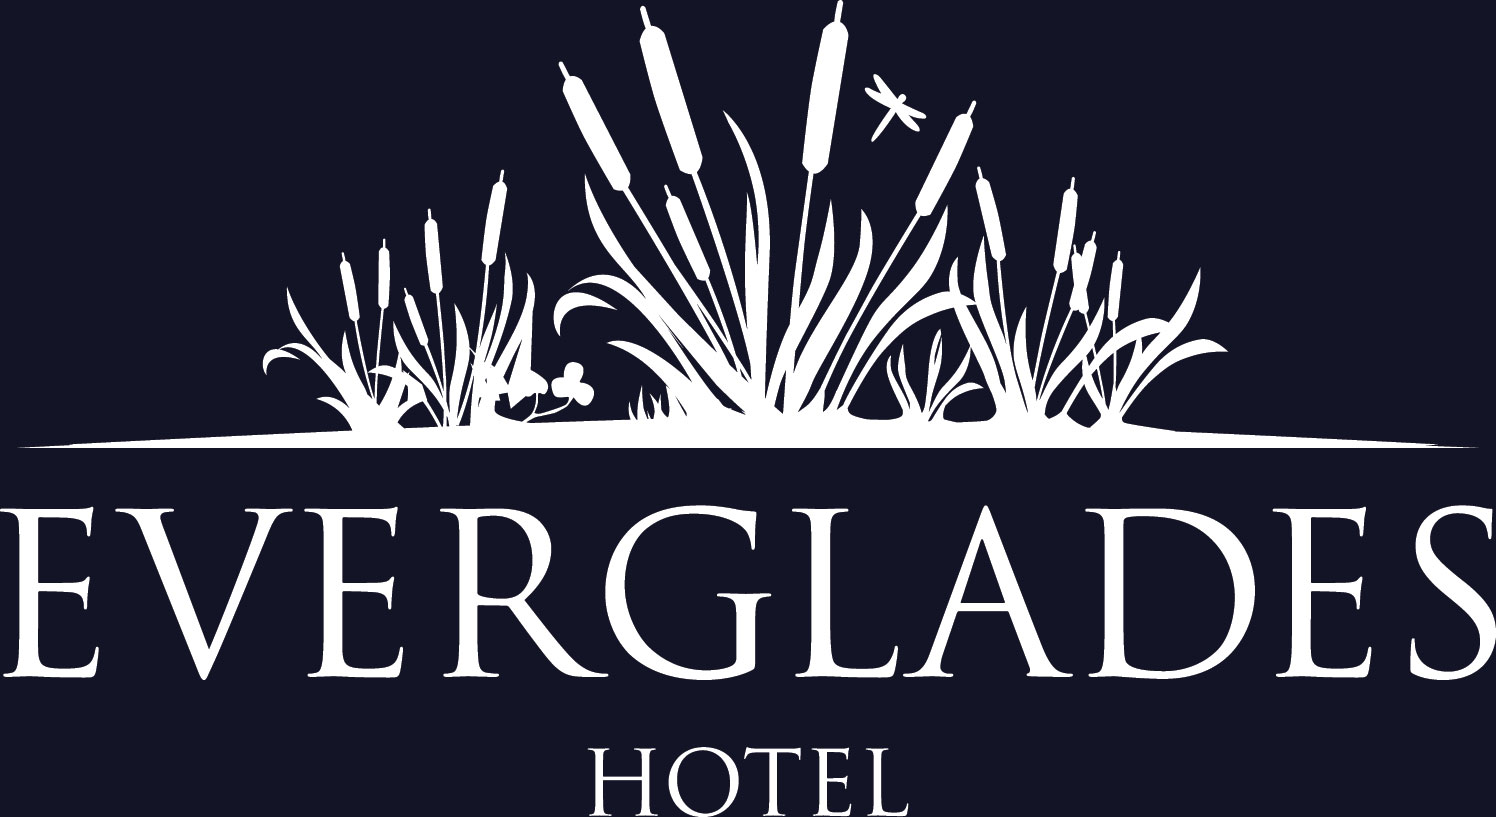 The Everglades Hotel